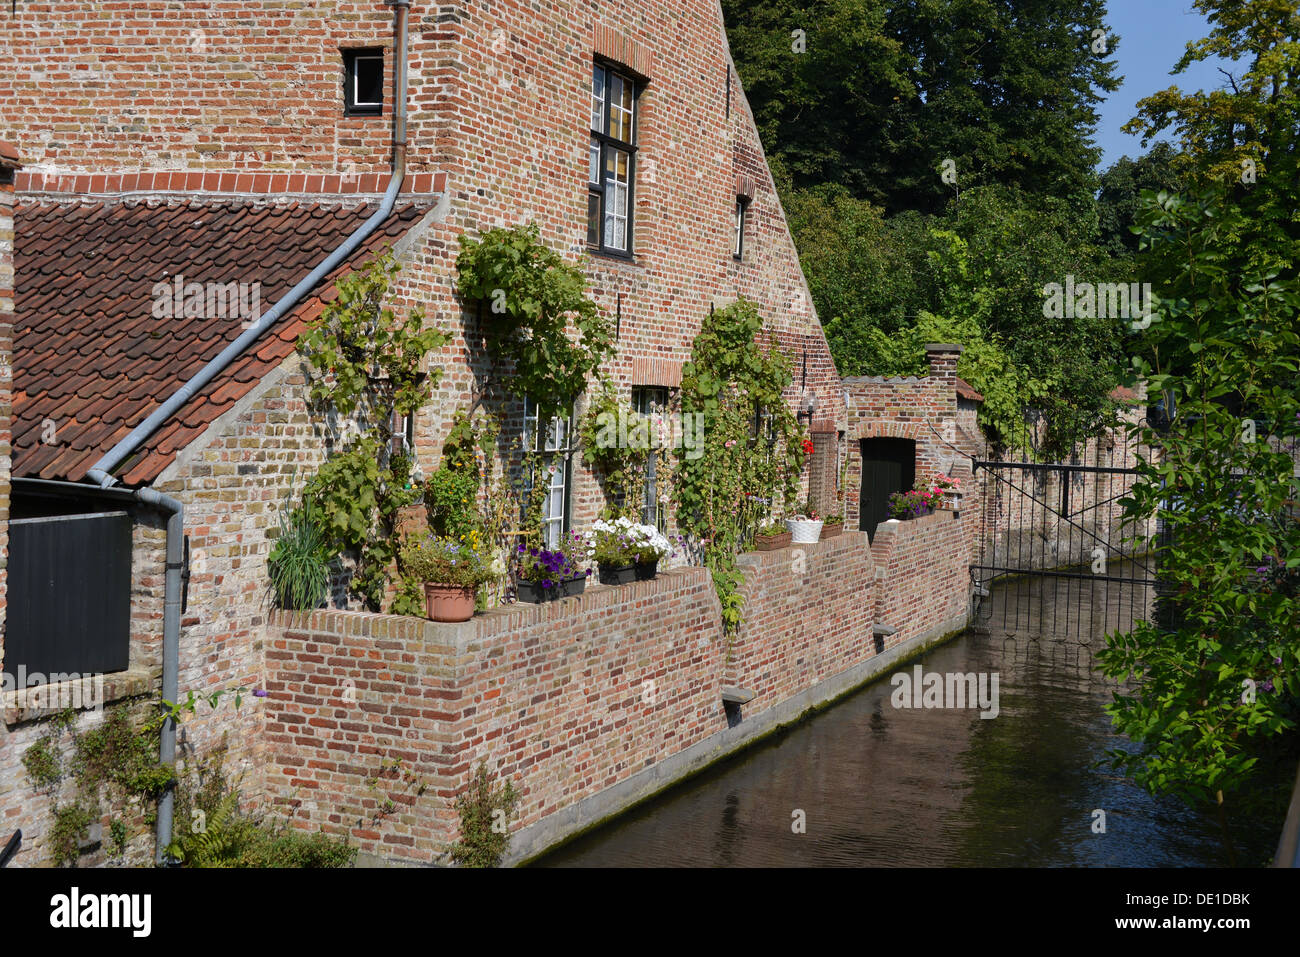 A house near a canal in Bruges, Belgium. - Stock Image